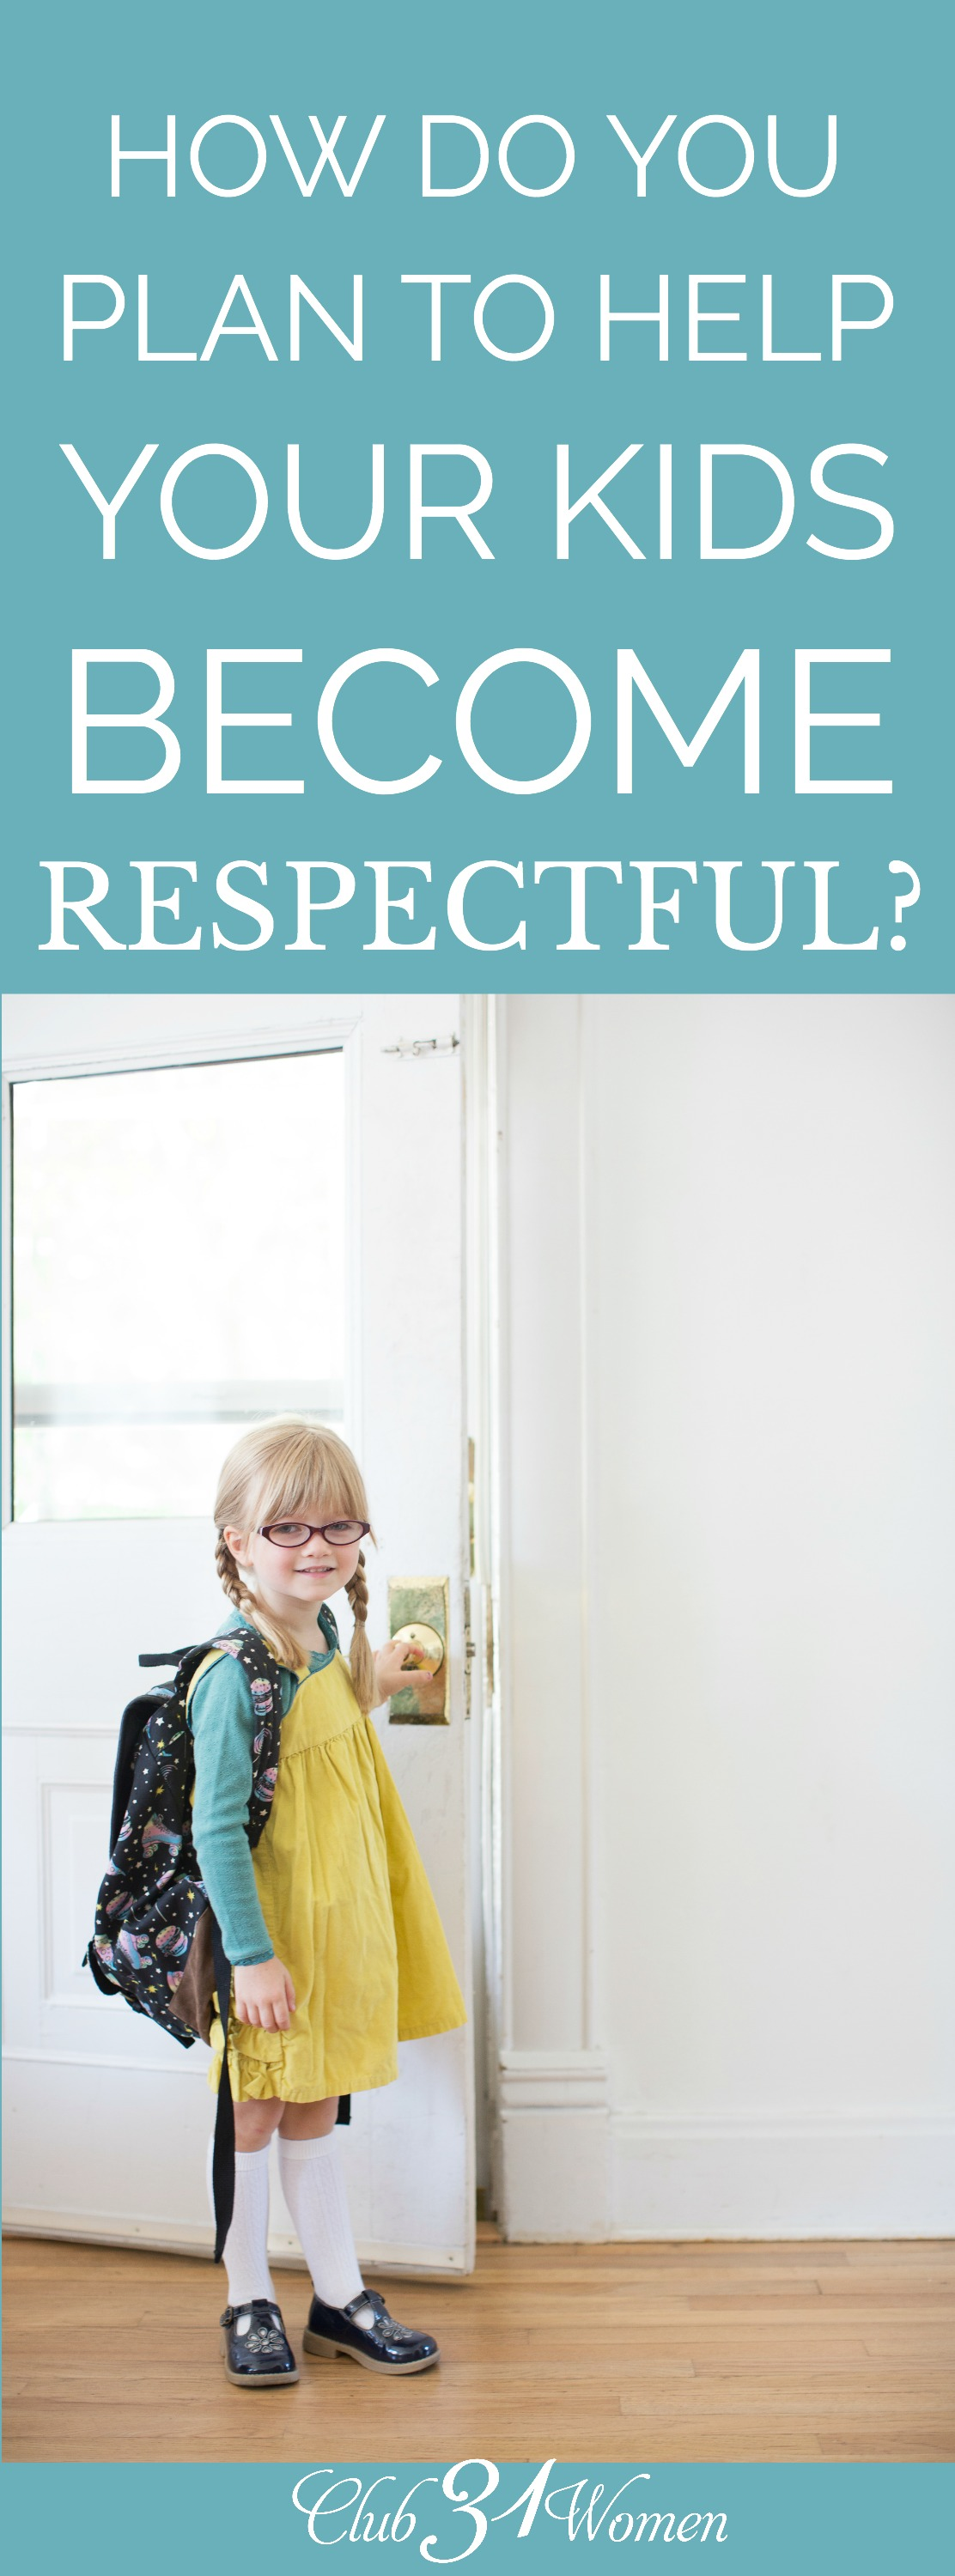 Has respect in children become a lost art today? How are you teaching your own children how to be respectful to others, especially adults? via @Club31Women